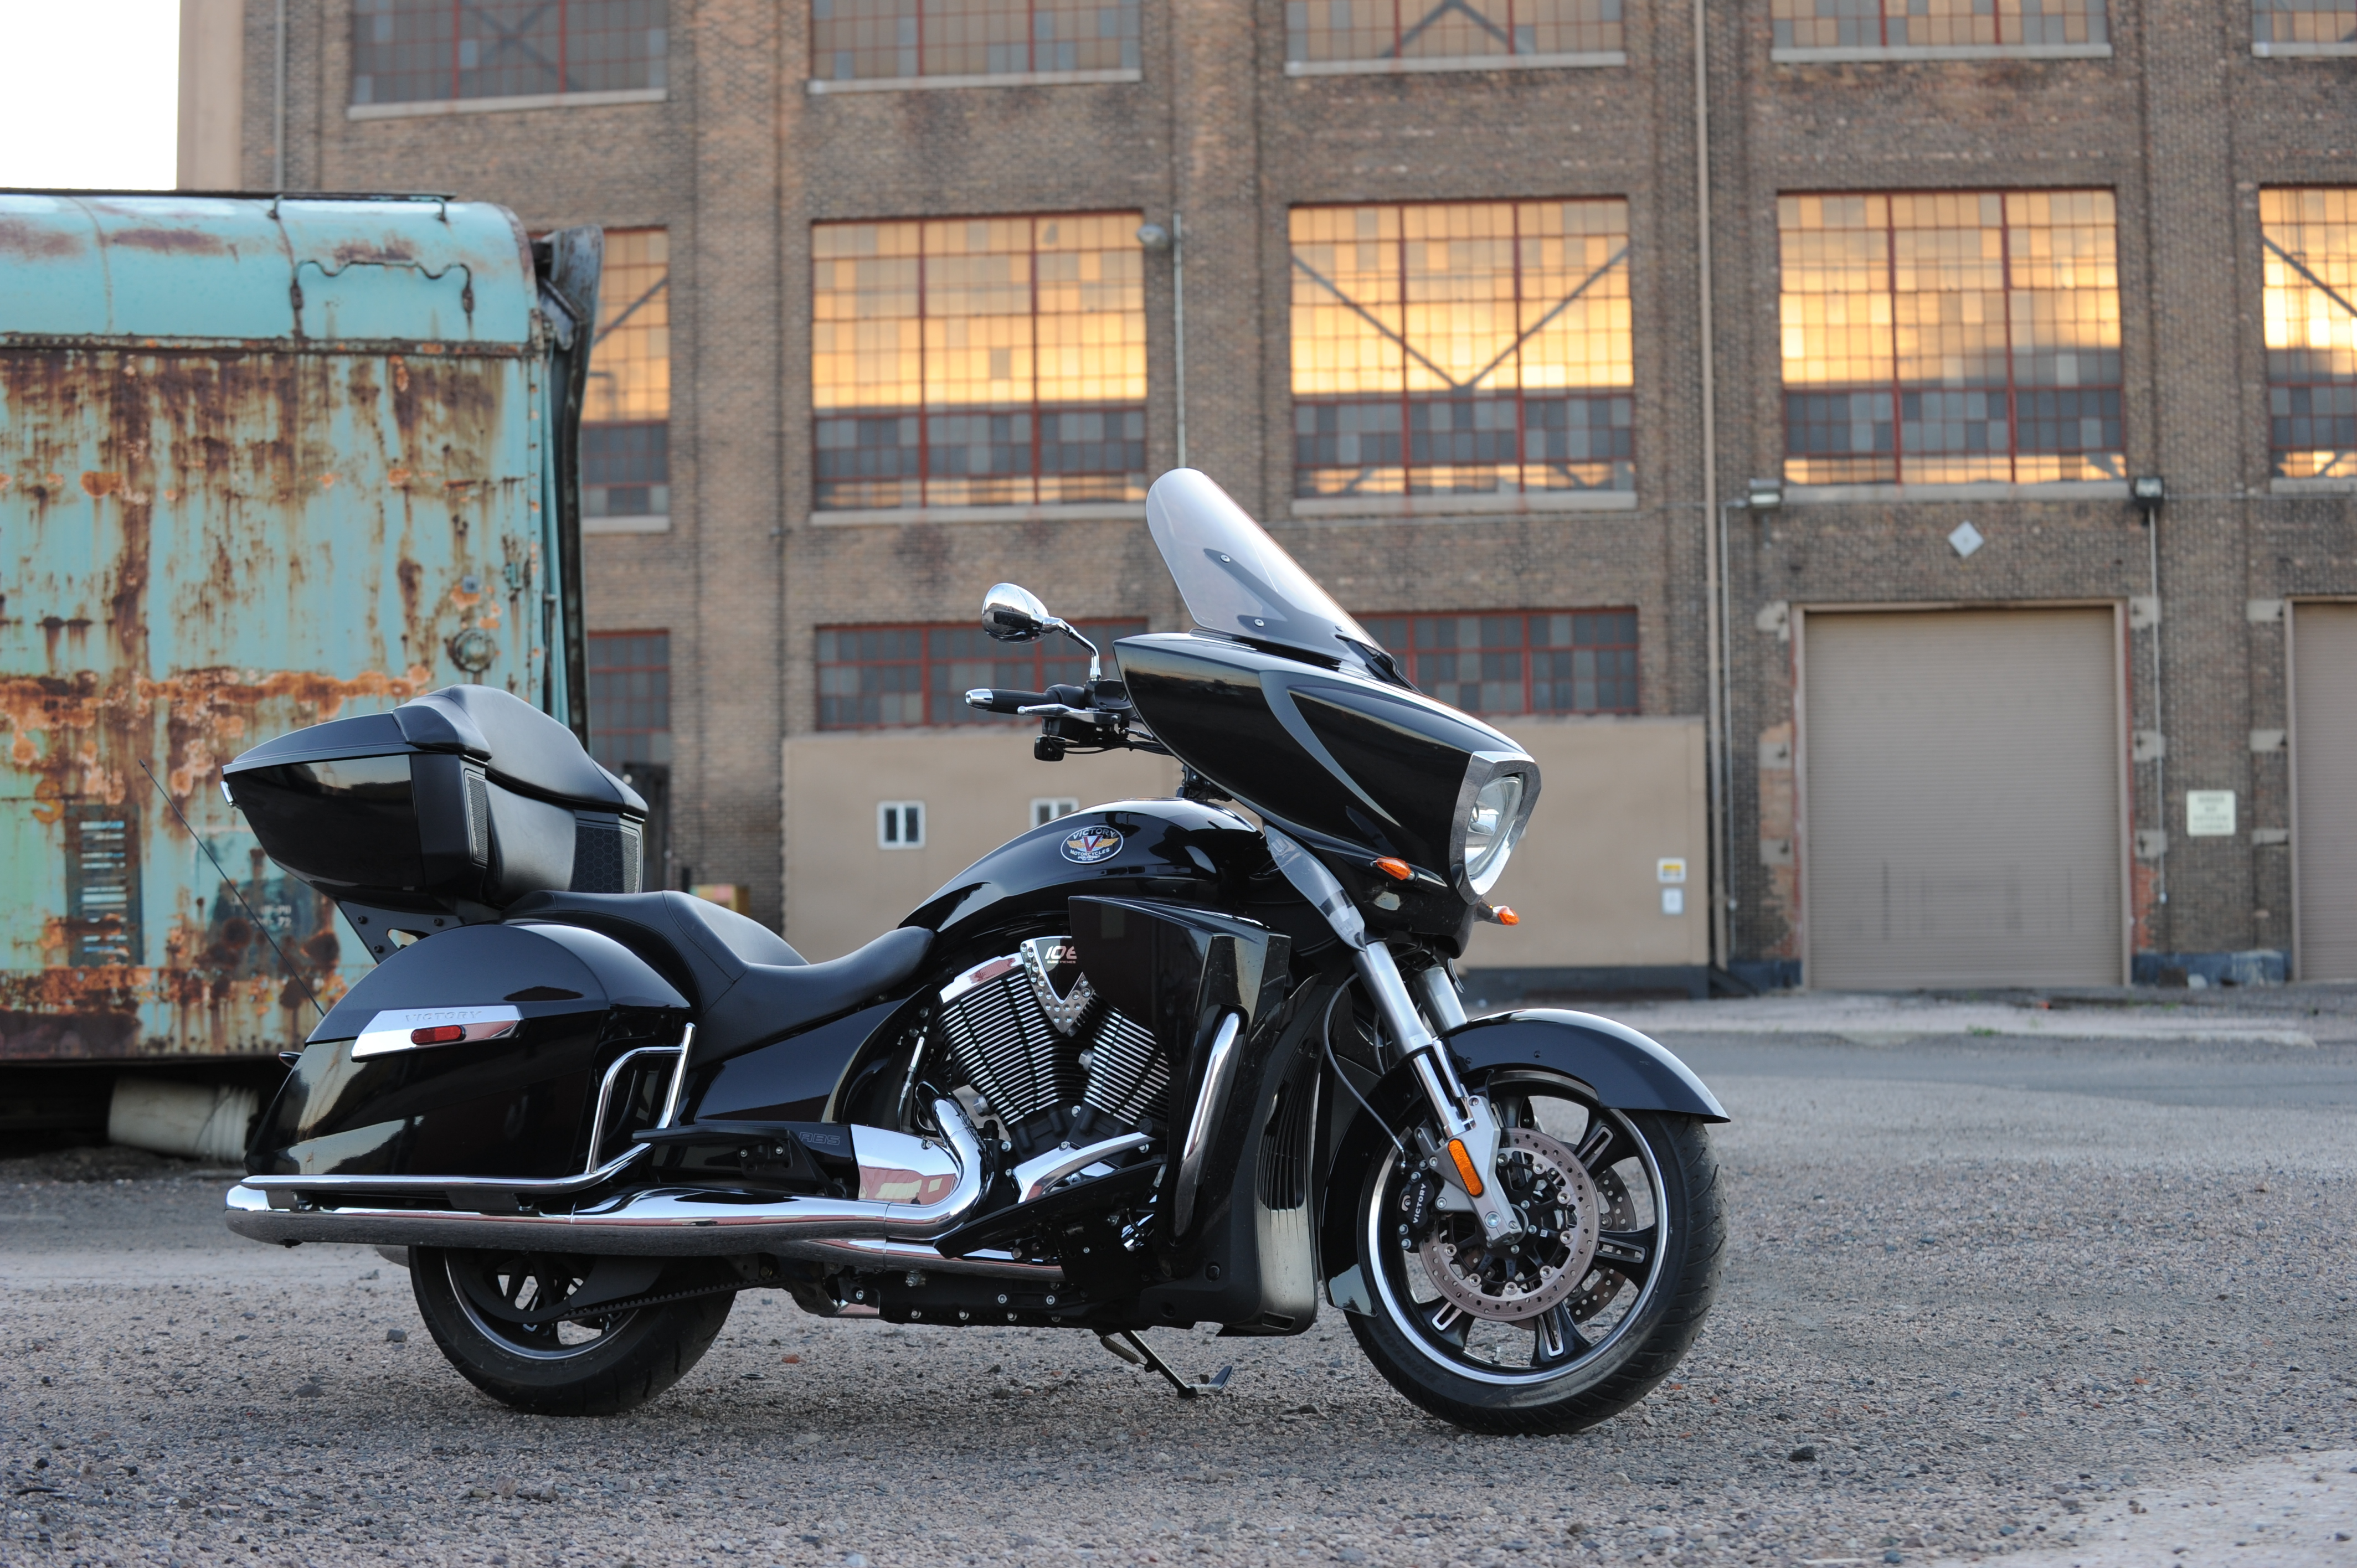 Victory Touring Cruiser 1500 2005 images #129171